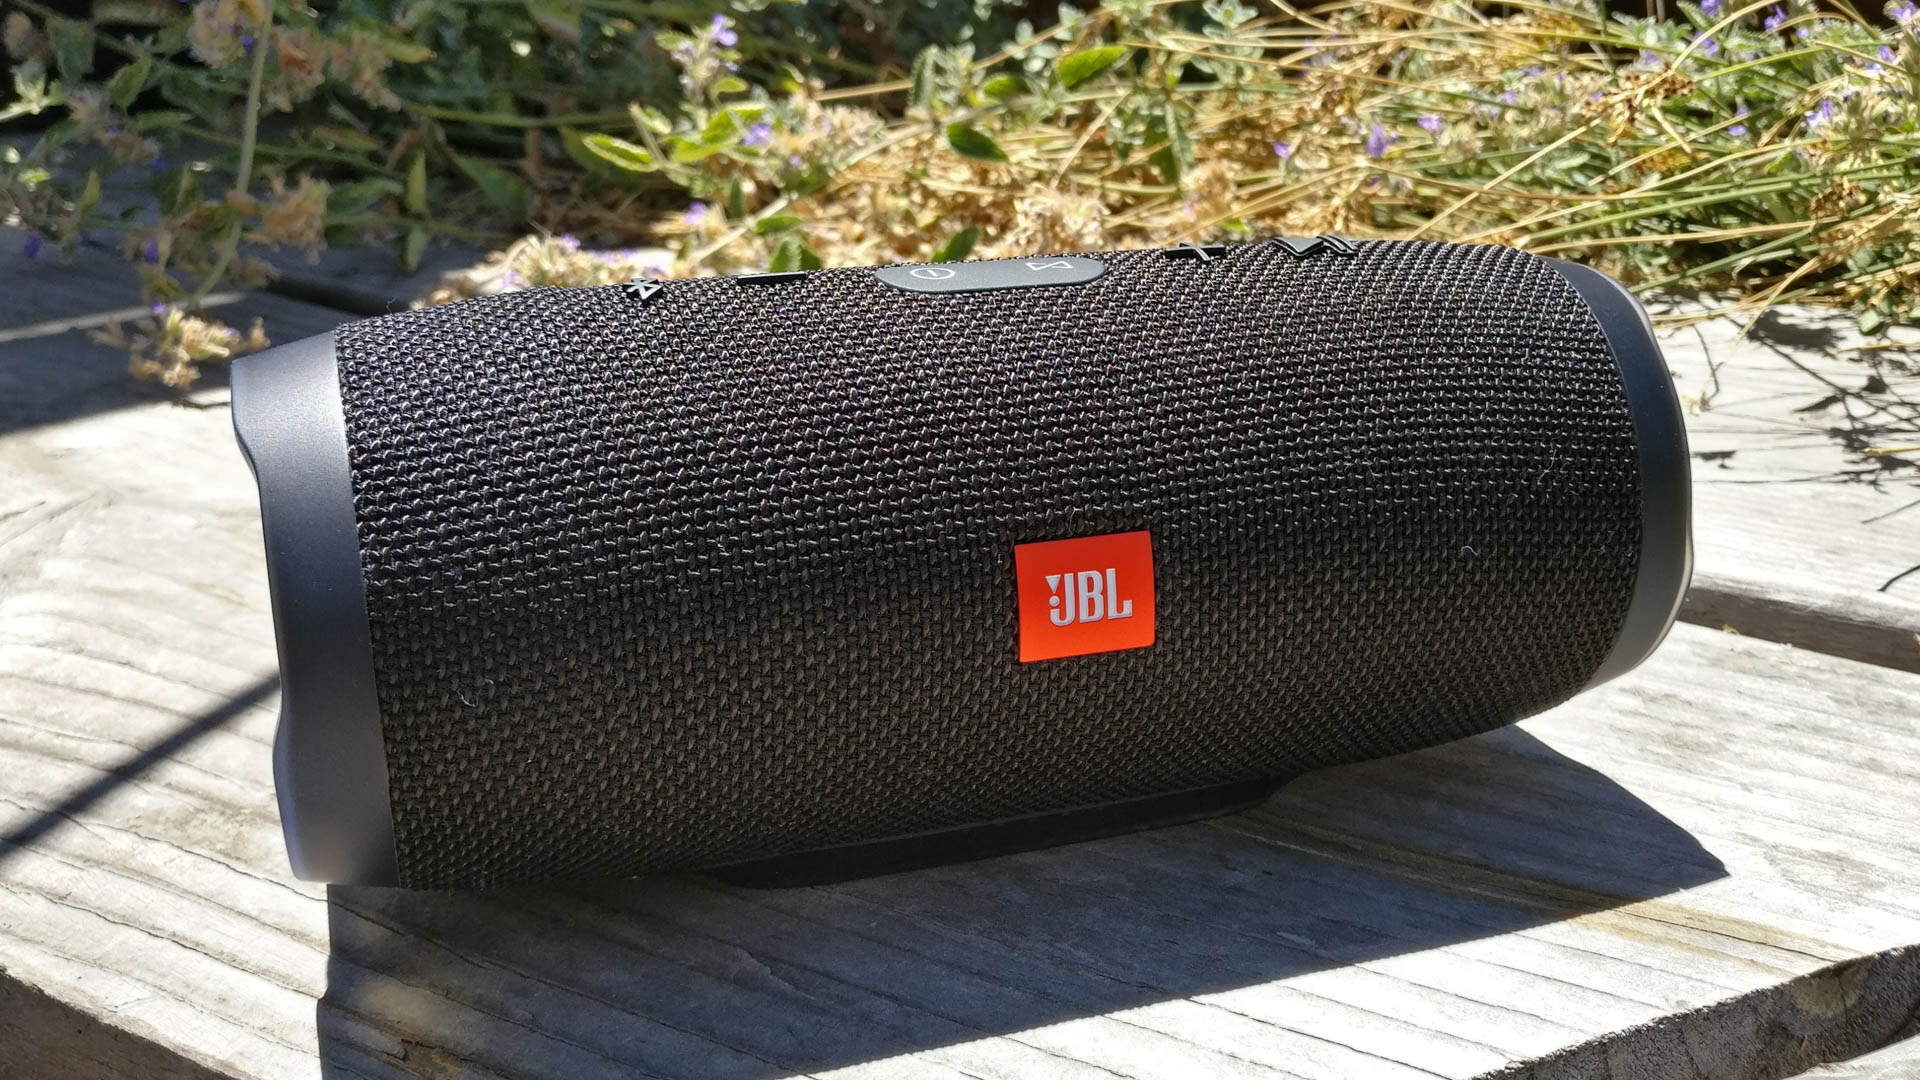 The best waterproof speakers available today